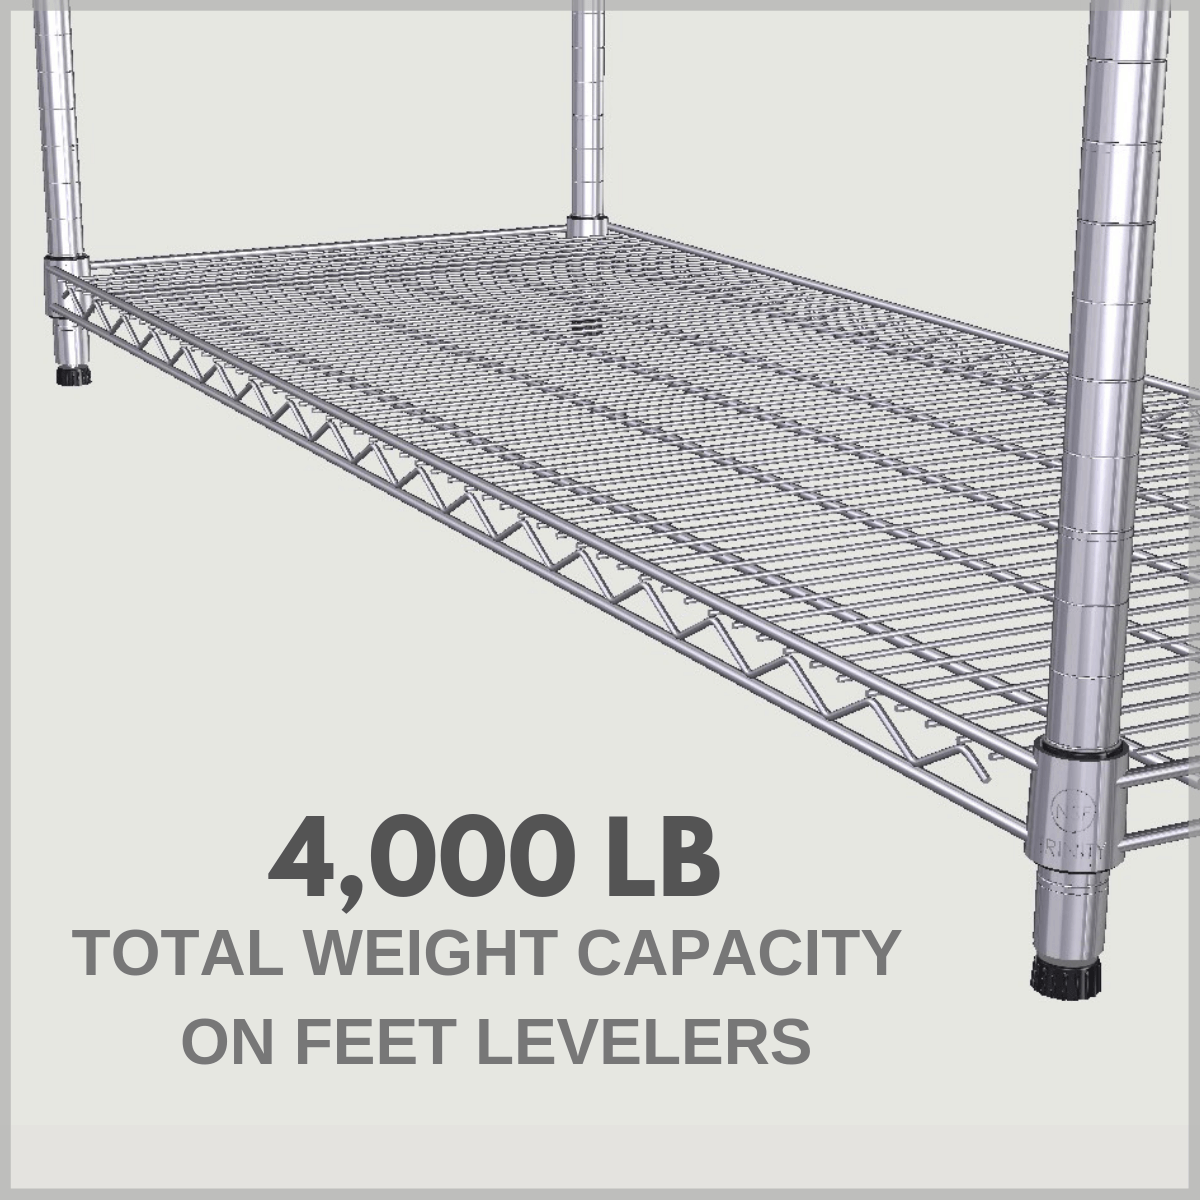 4,000 pound total weight capacity if feet levelers are installed